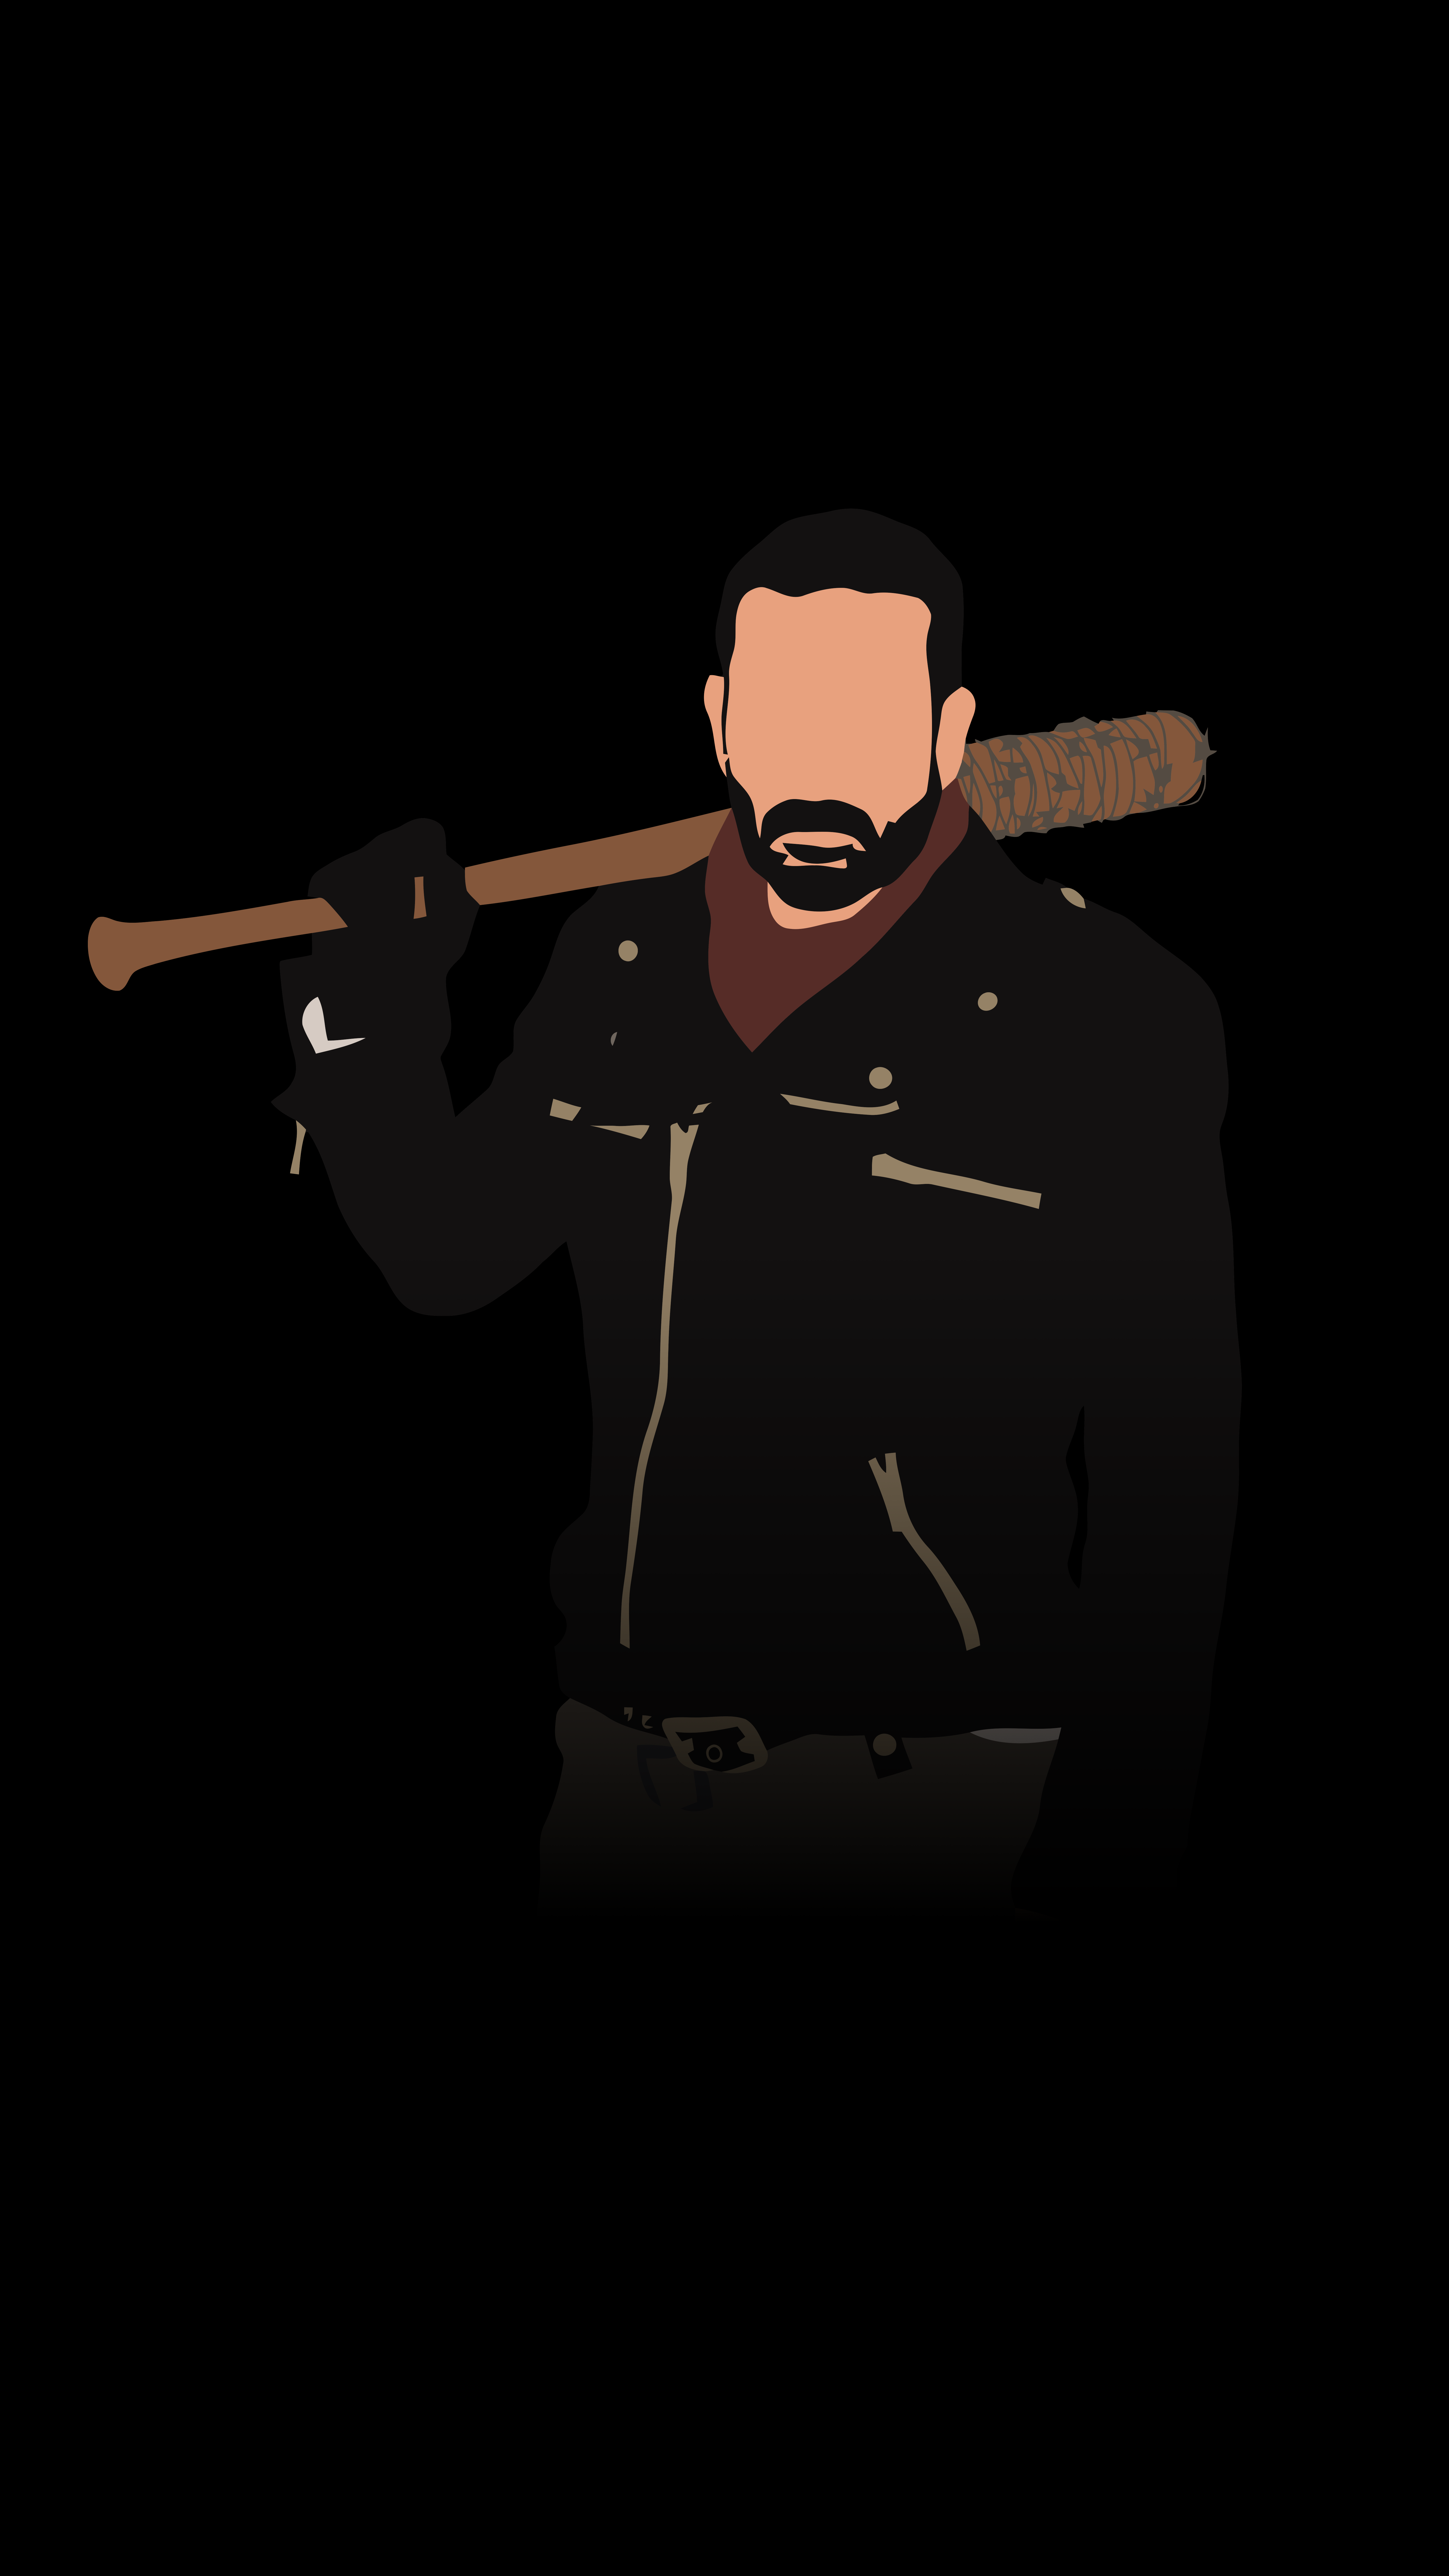 Negan From The Walking Dead 5625x10000 Amoledbackgrounds Walking Dead Wallpaper The Walking Dead Poster Walking Dead Art